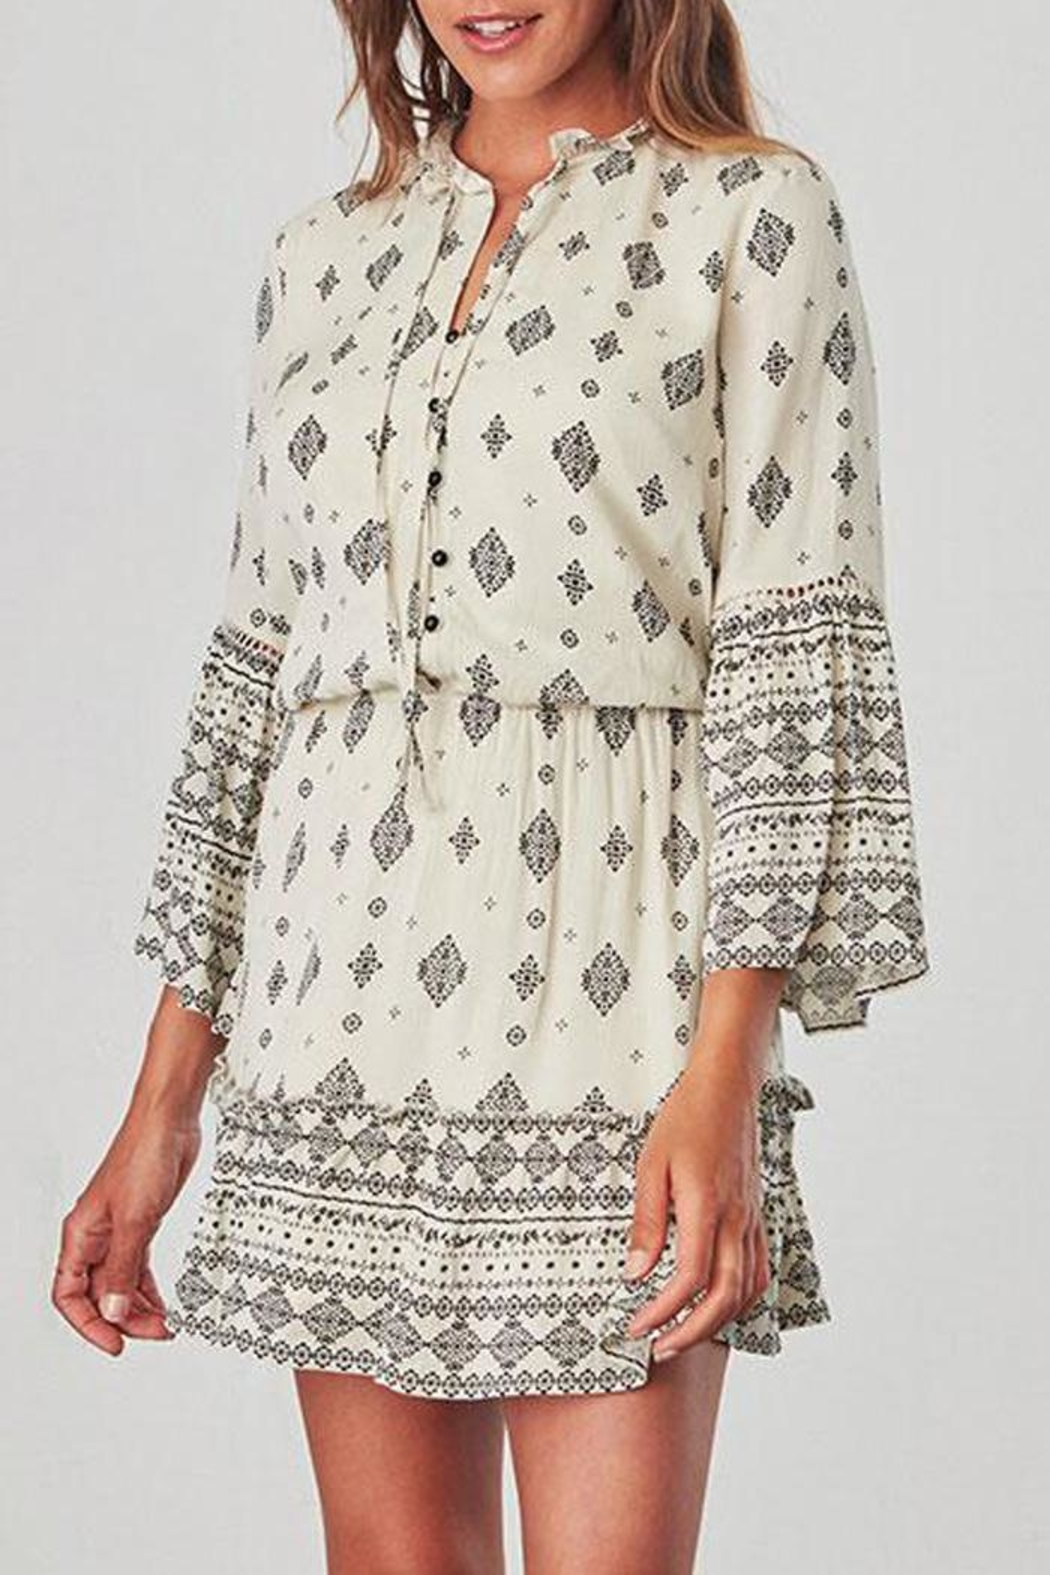 Jack by BB Dakota Andee Patterned Dress - Main Image